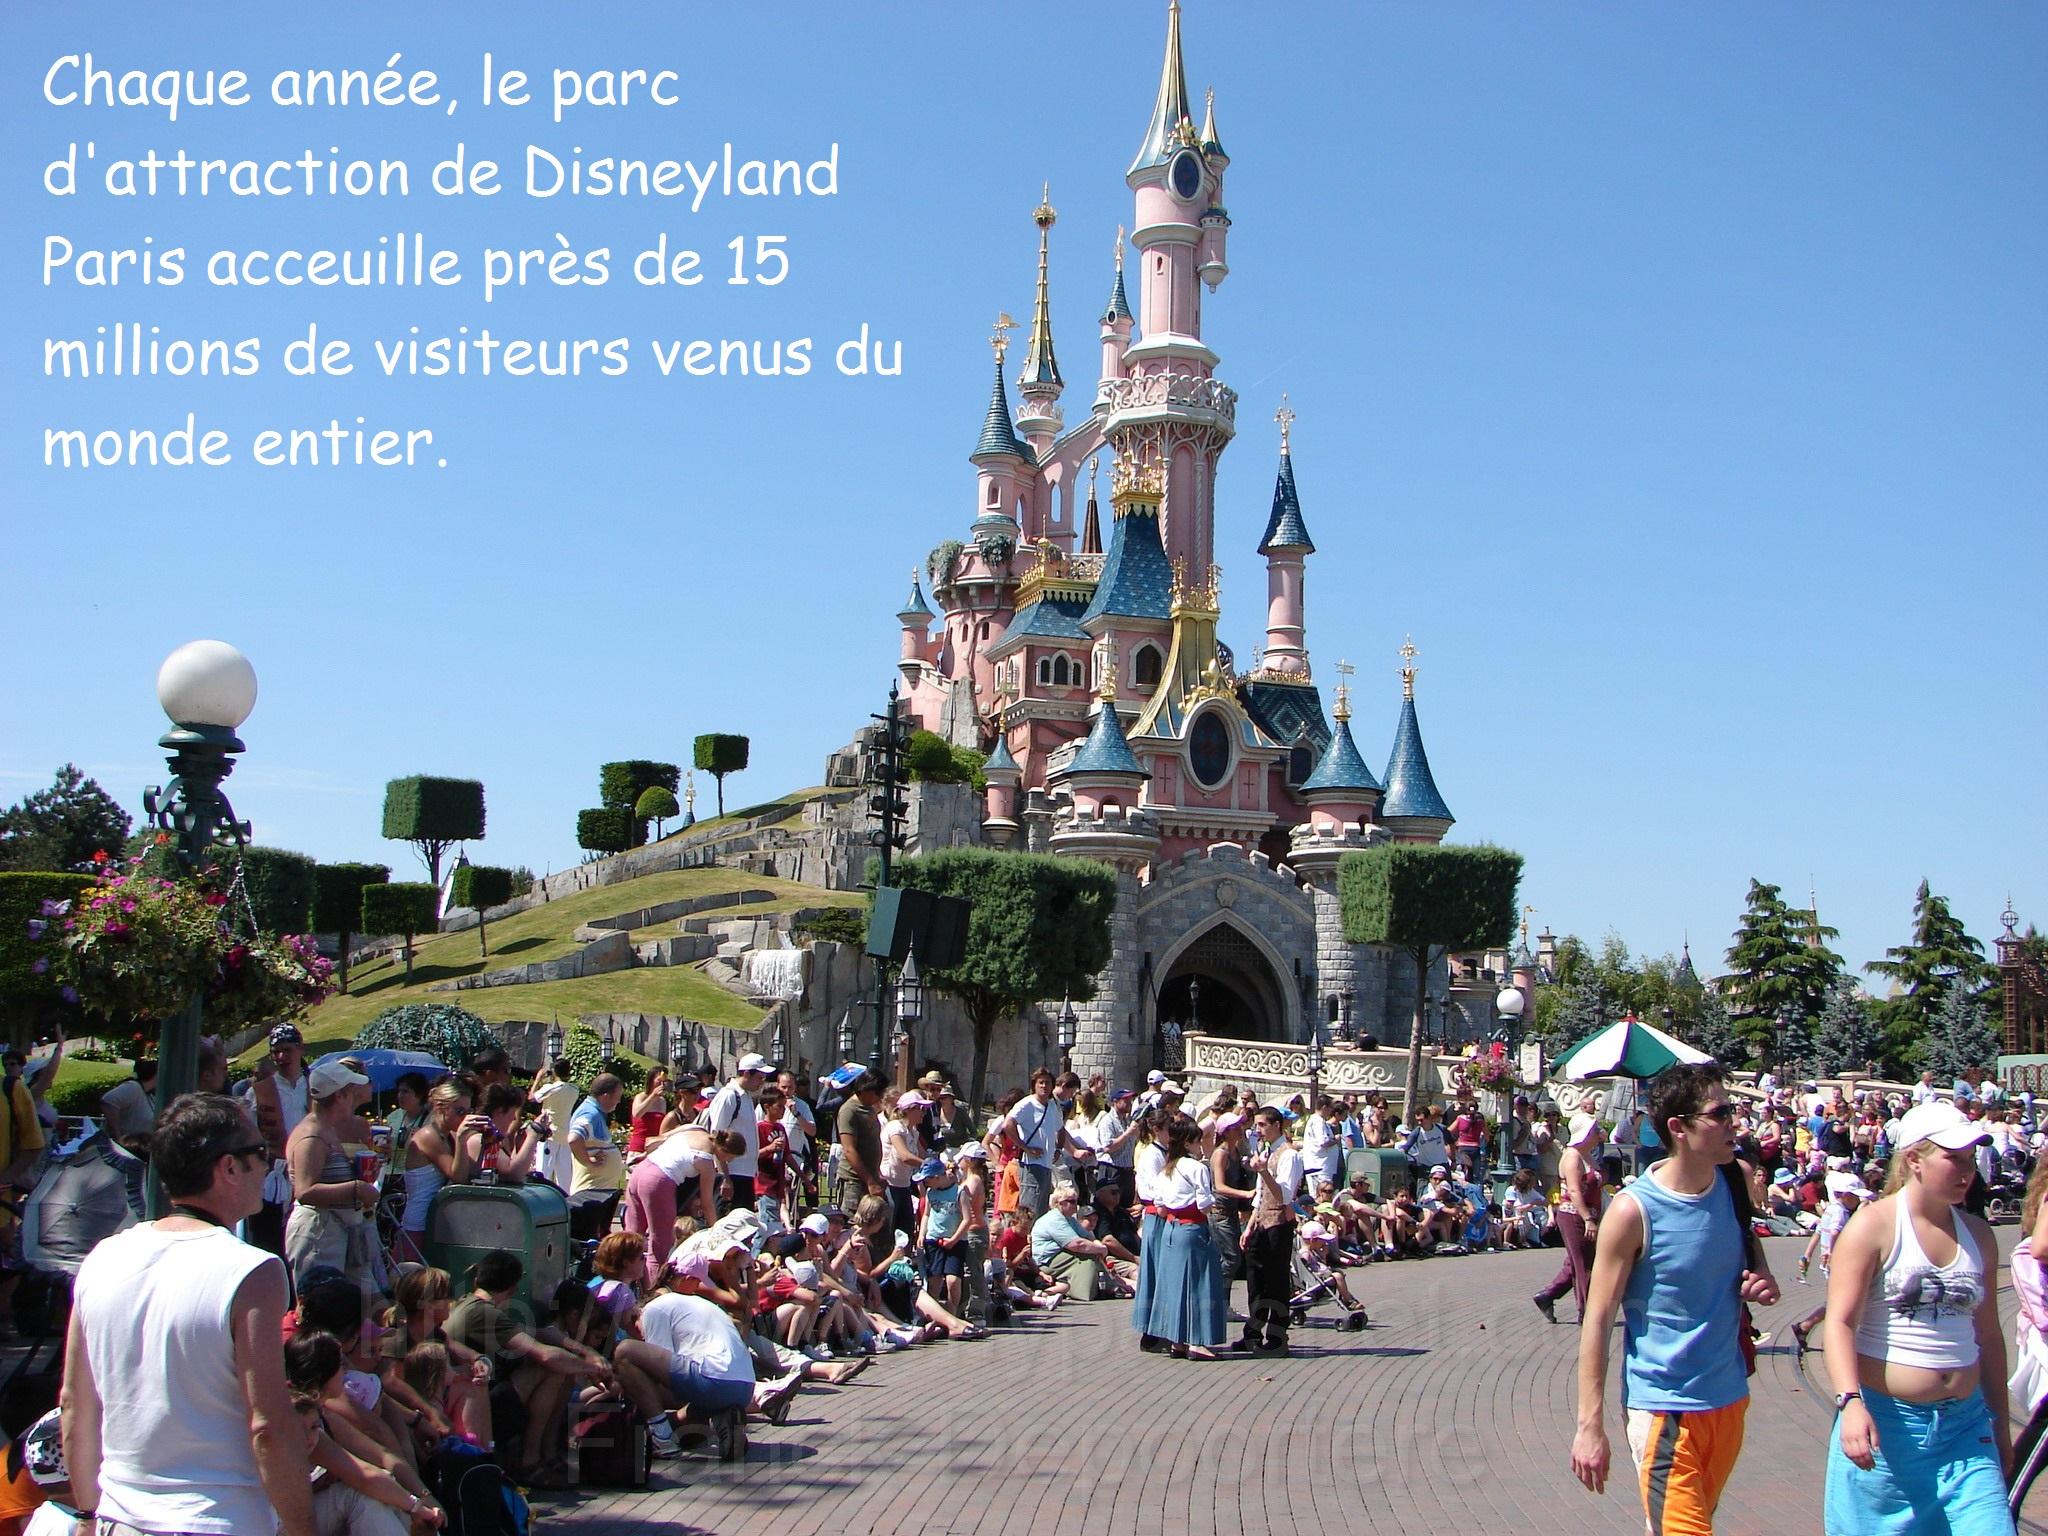 DOC 3 – Le parc d'attraction de Disneyland Paris DOC 4 – Paris, la ville la plus visitée du monde